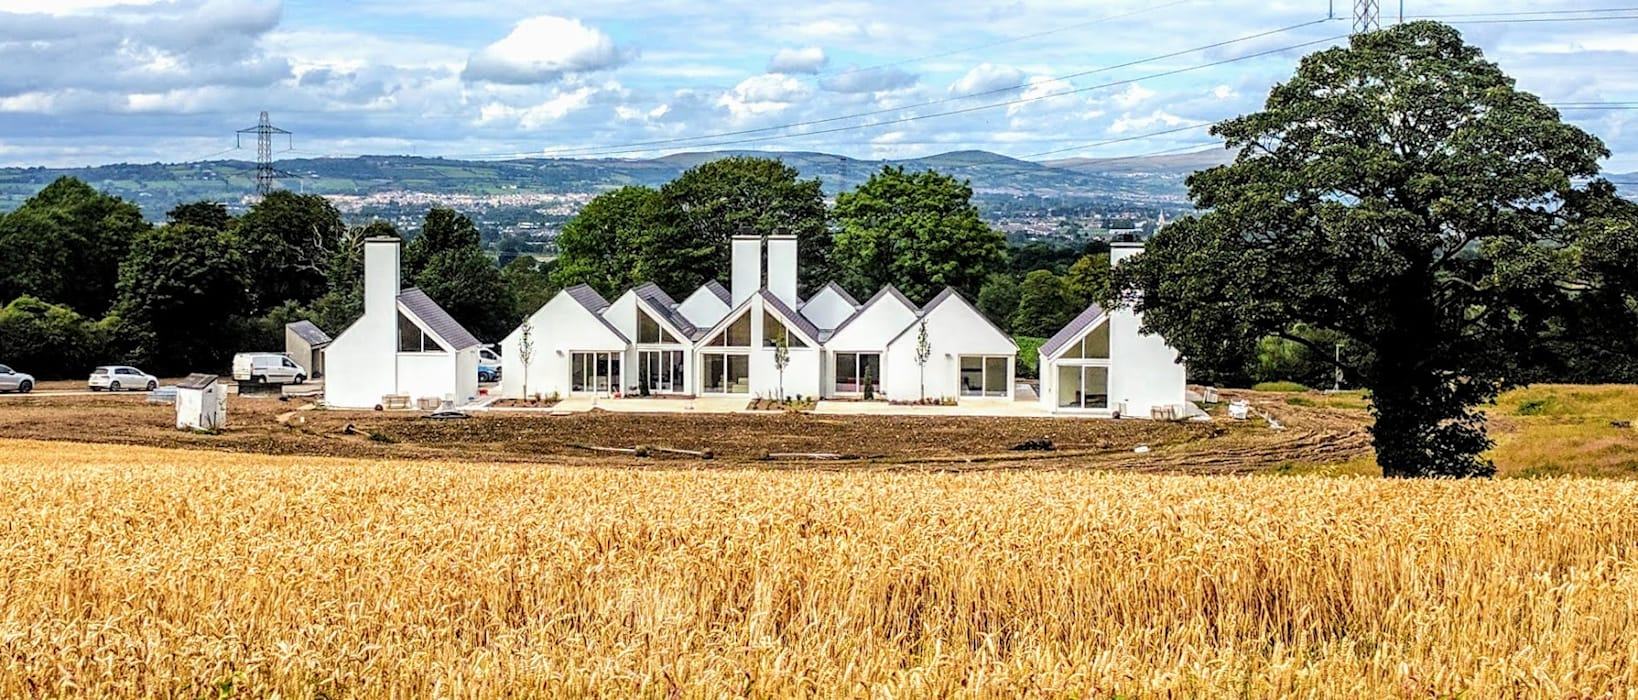 contemporary country house, set in the corn fields of Northern Ireland by award winning architect Jane Burnside: modern Houses by Jane D Burnside Architects